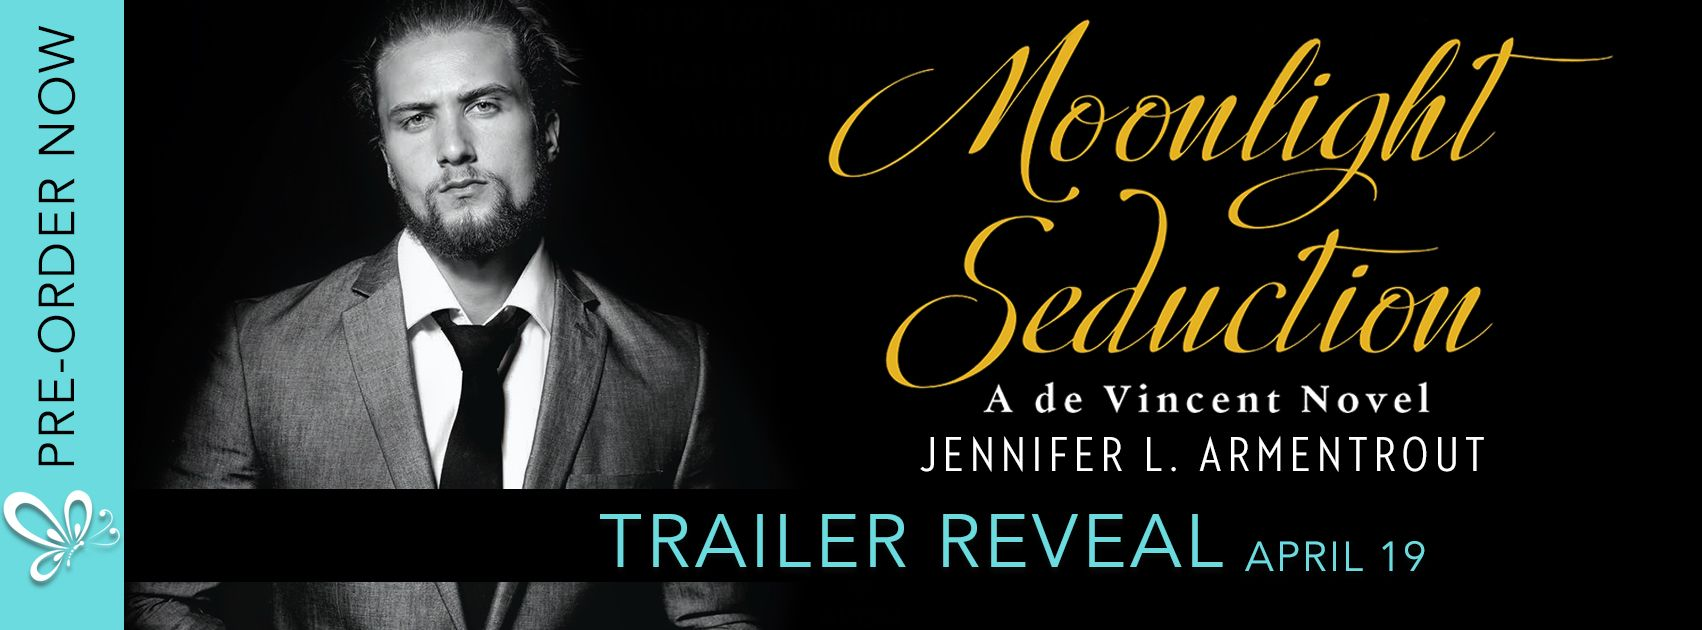 Tlbc S Book Blog Trailer Reveal Moonlight Seduction By Jennifer L Blog Tour Book Trailer Seduction